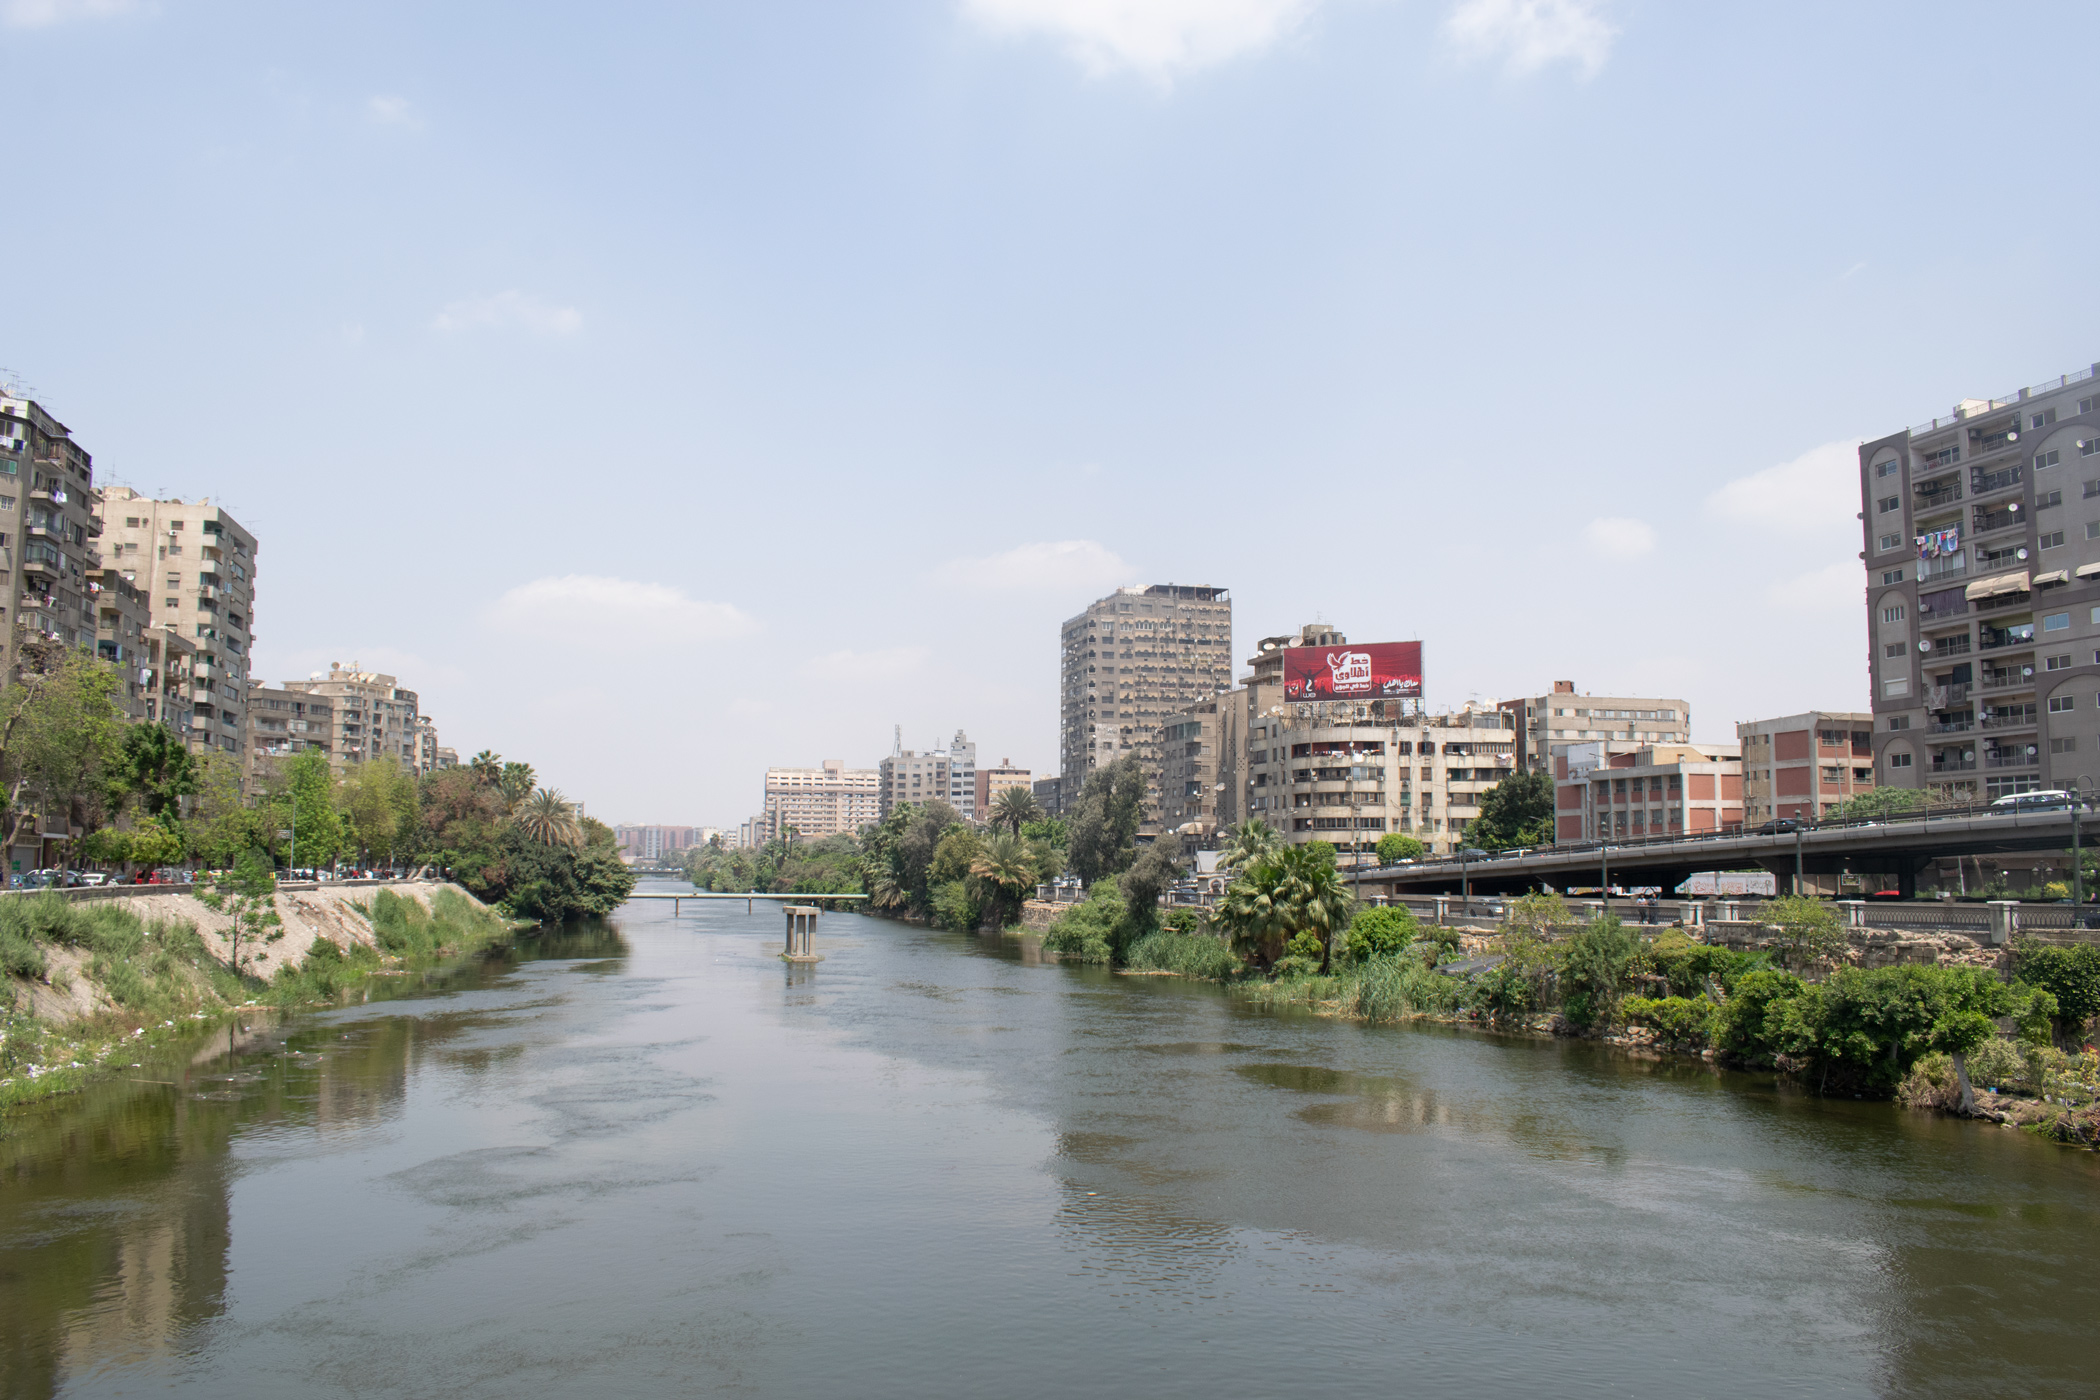 The famous River Nile runs right through Greater Cairo.